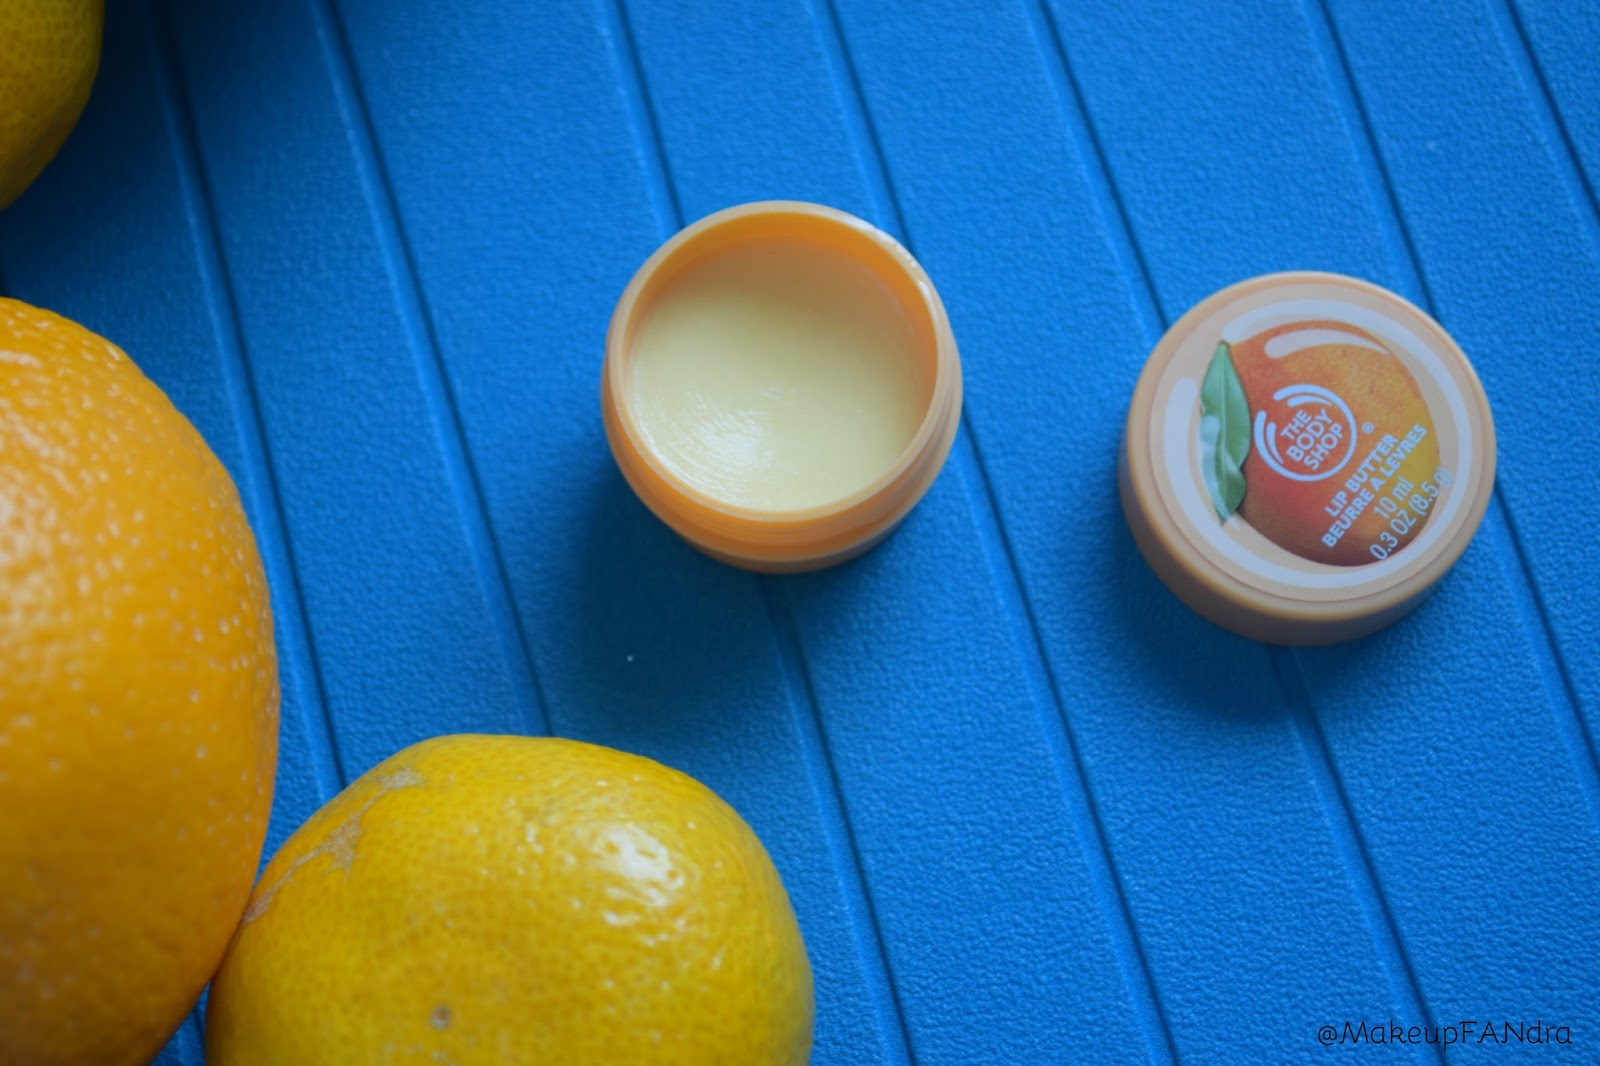 The body shop lip butter mango